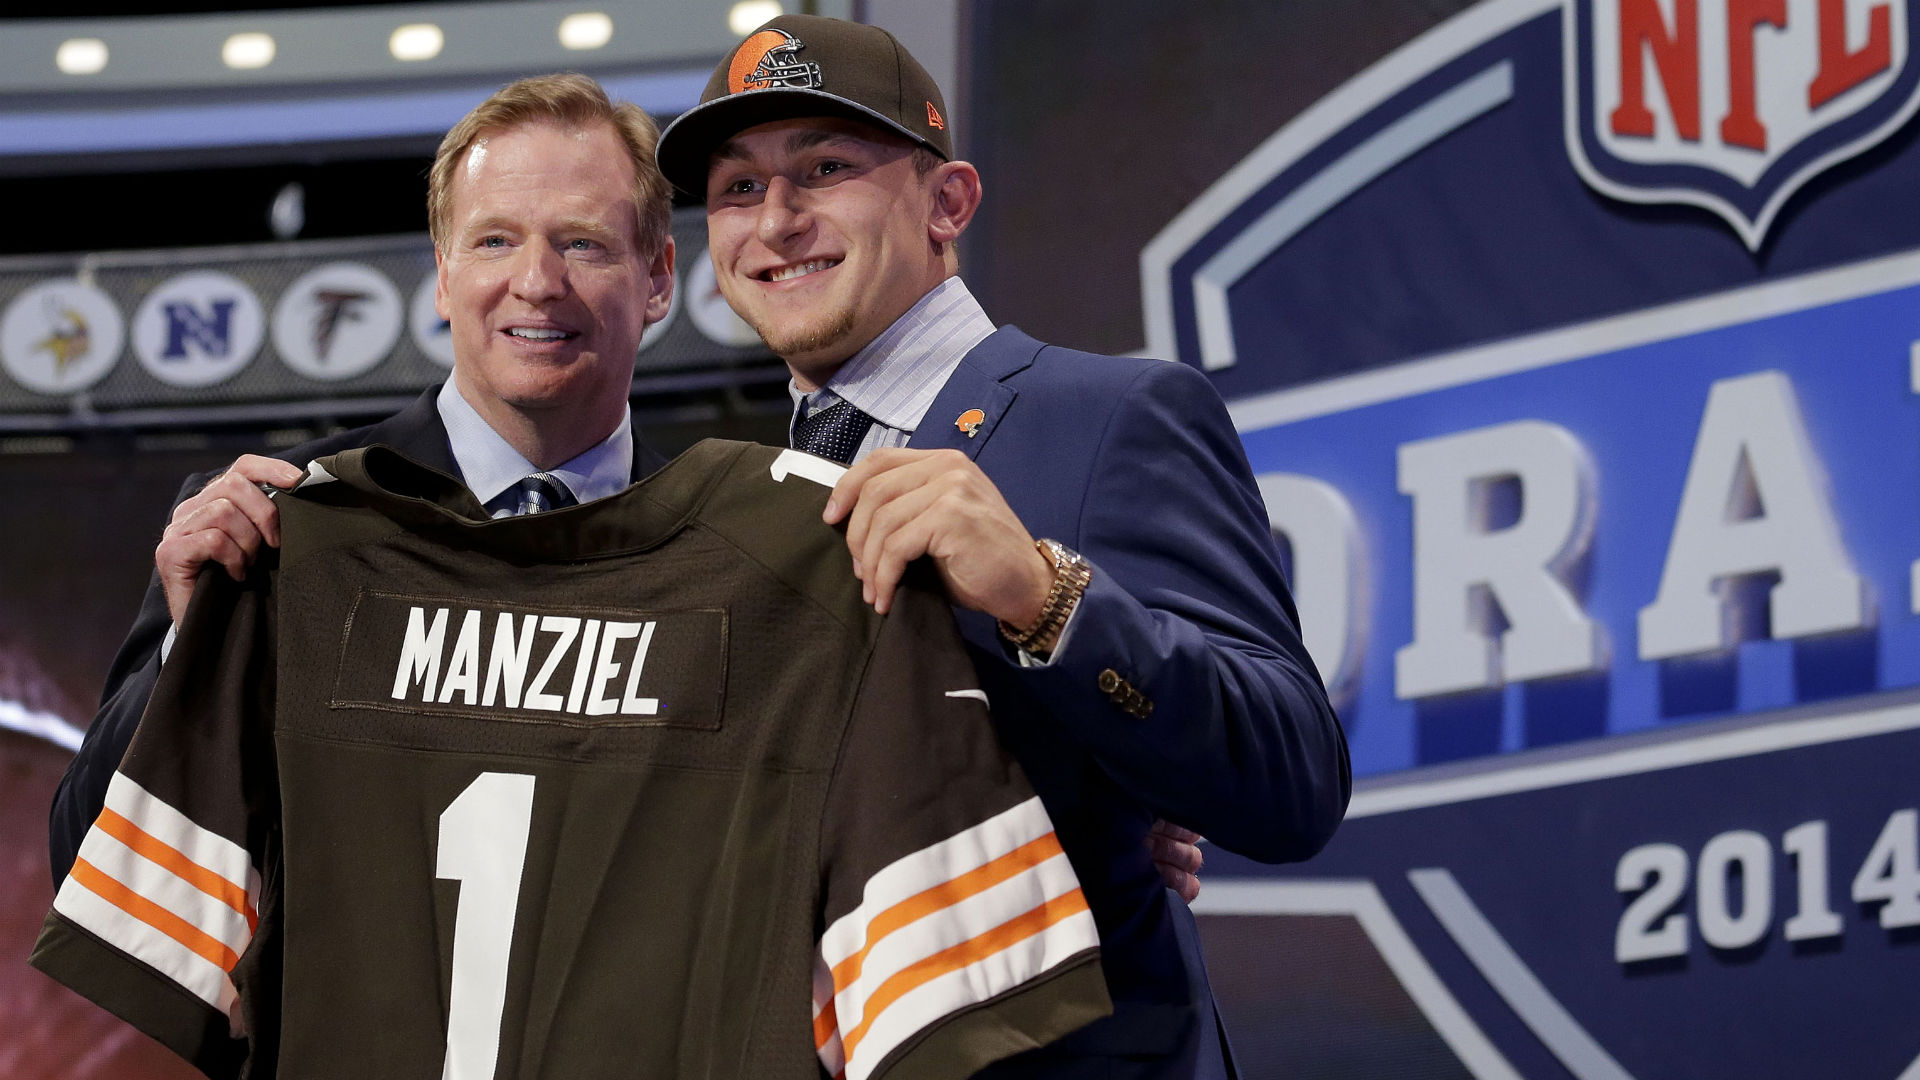 Johnny_Manziel_AP_0508_ftr